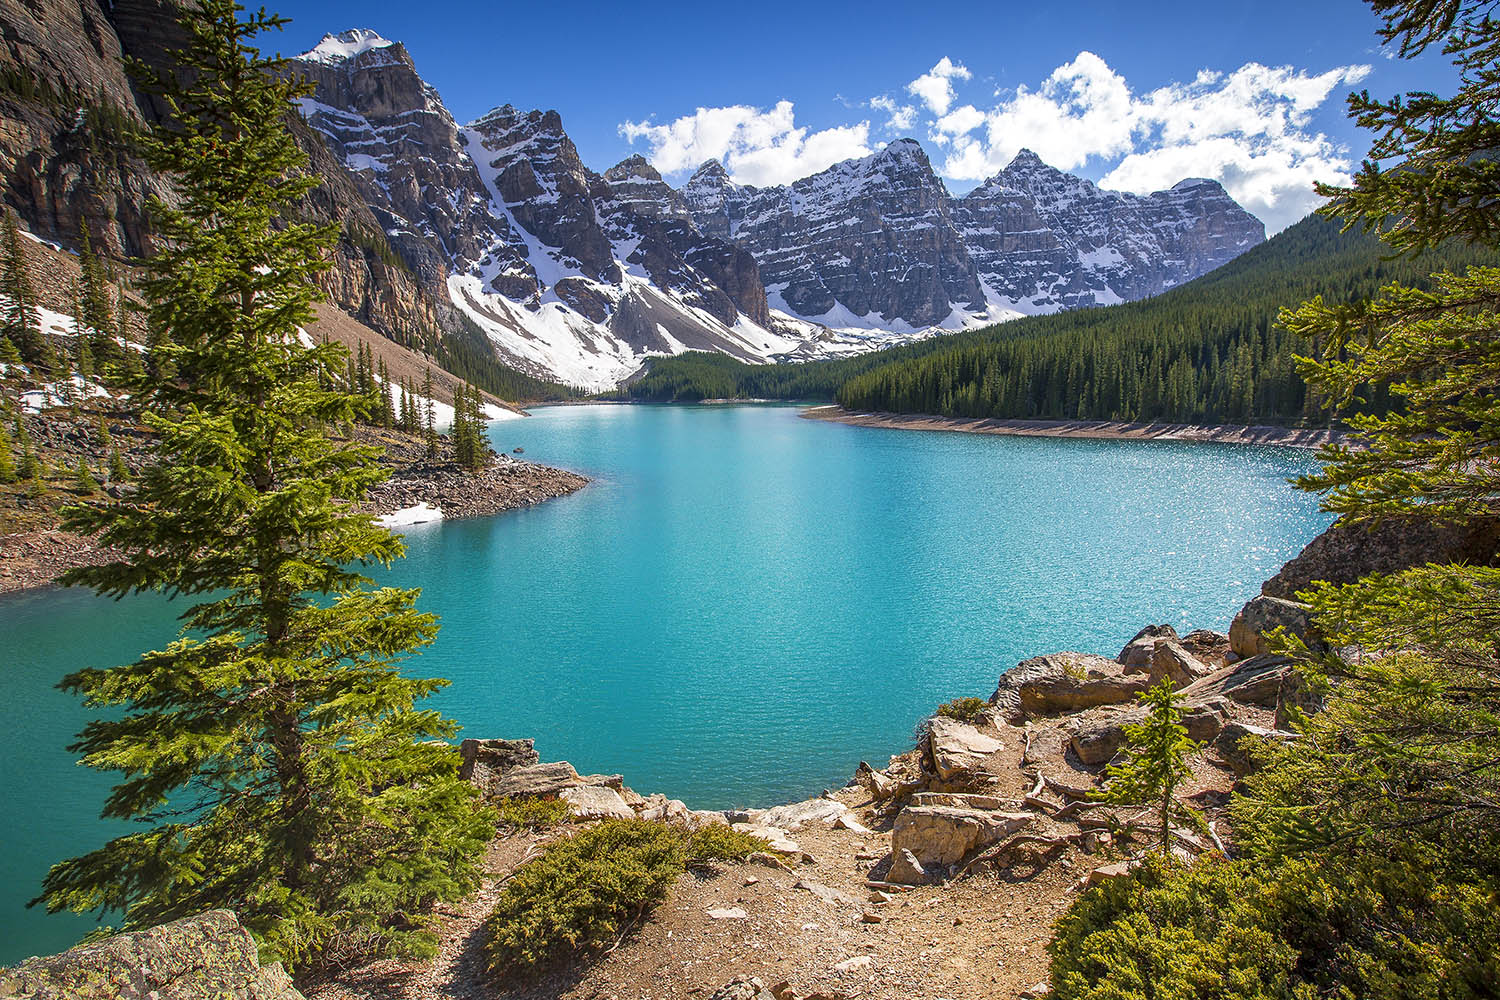 Moraine Lake, Banff National Park. Canada